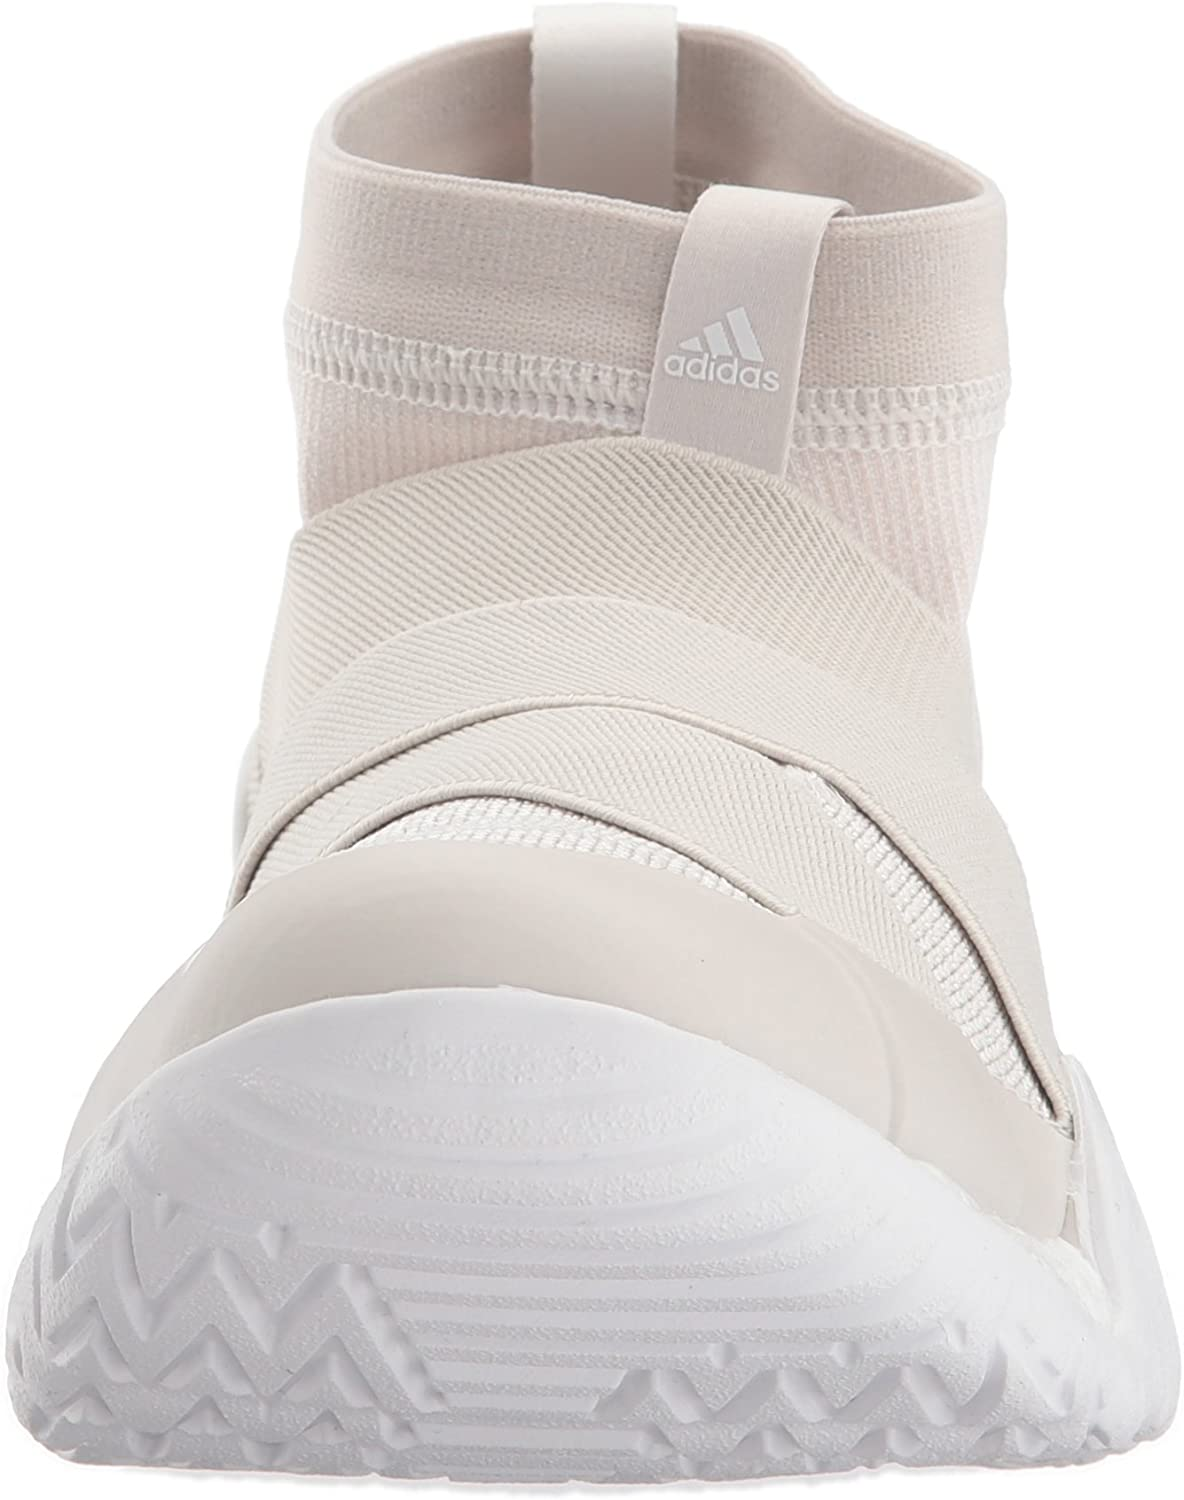 adidas Femmes Pureboost X Trainer 3.0 LL Chaussures Athlétiques Chalk Pearl/Crystal White/White